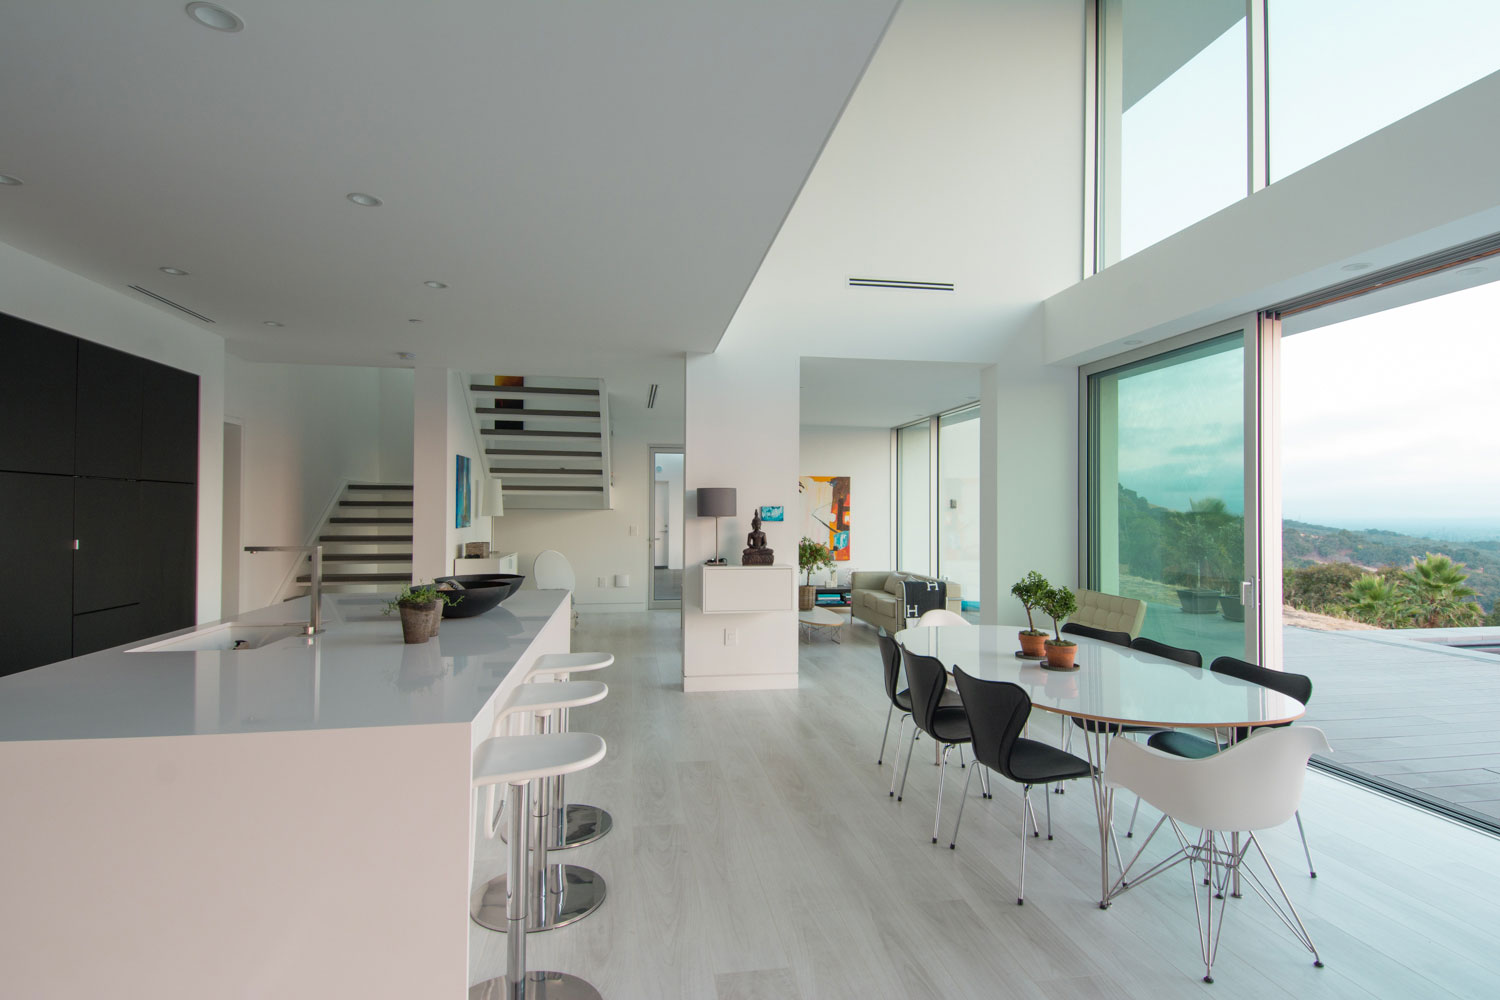 Open plan modern kitchen and dining room with view